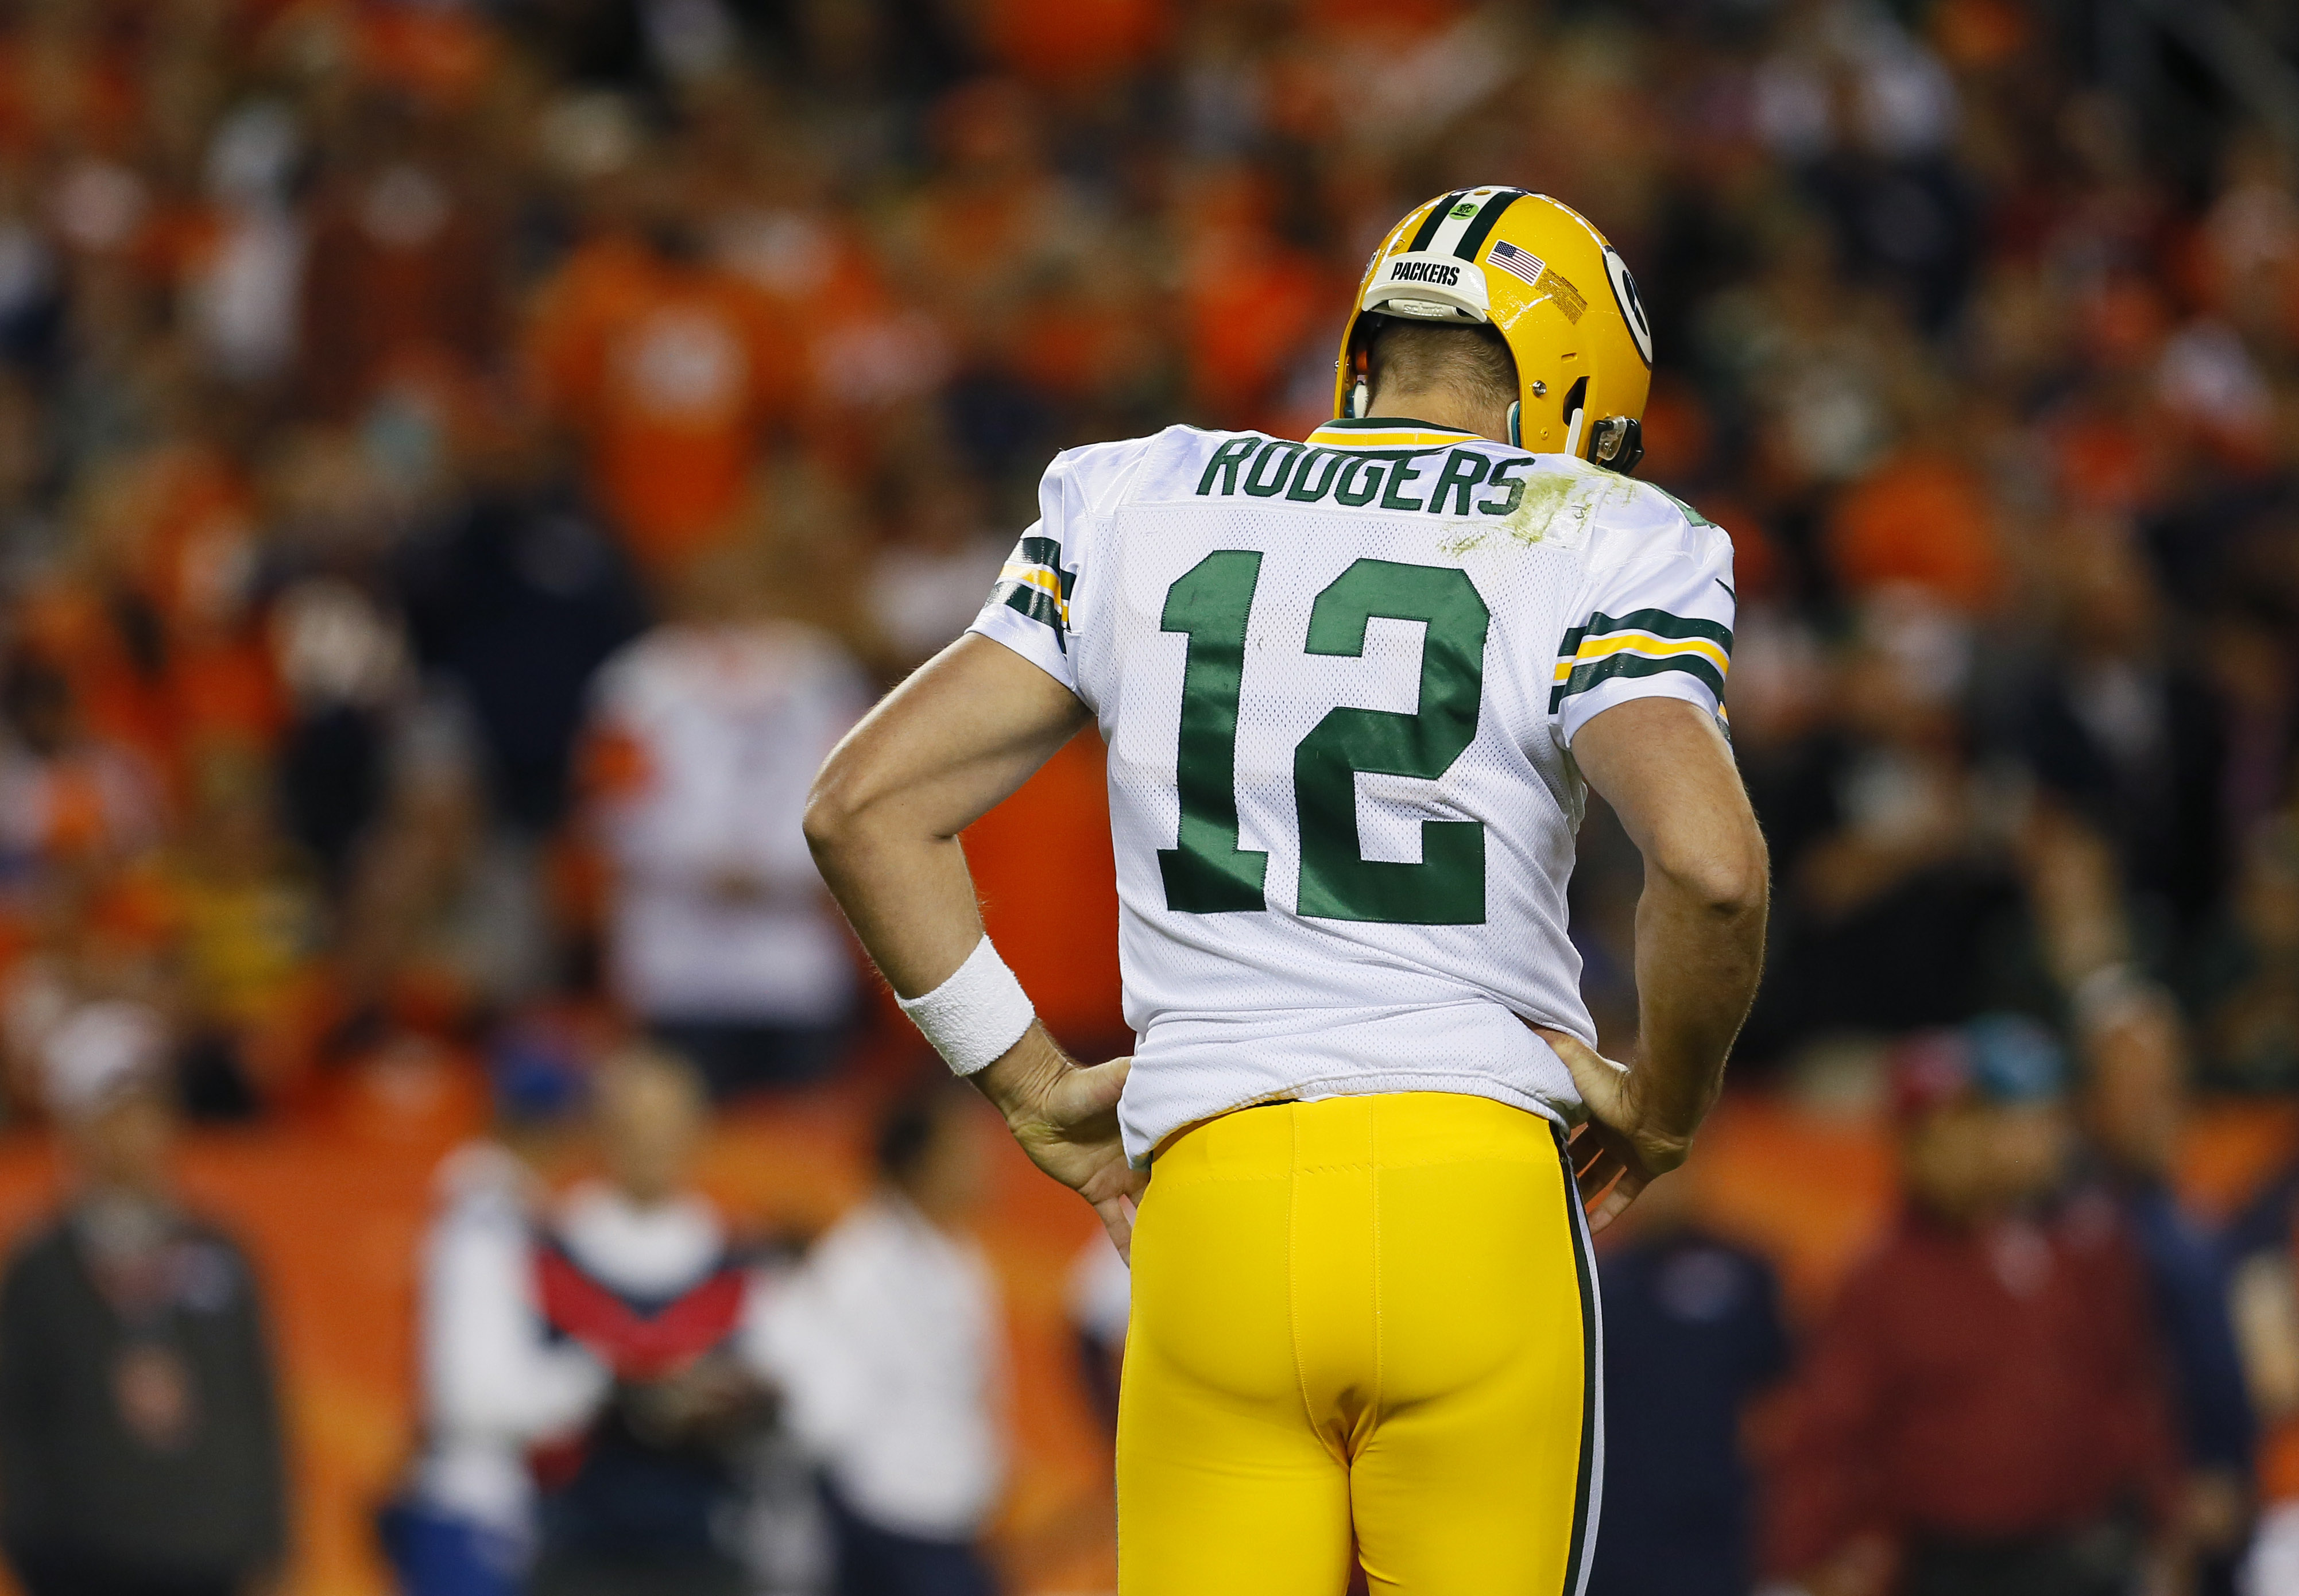 Aaron Rodgers 4k Ultra HD Wallpaper And Background Image